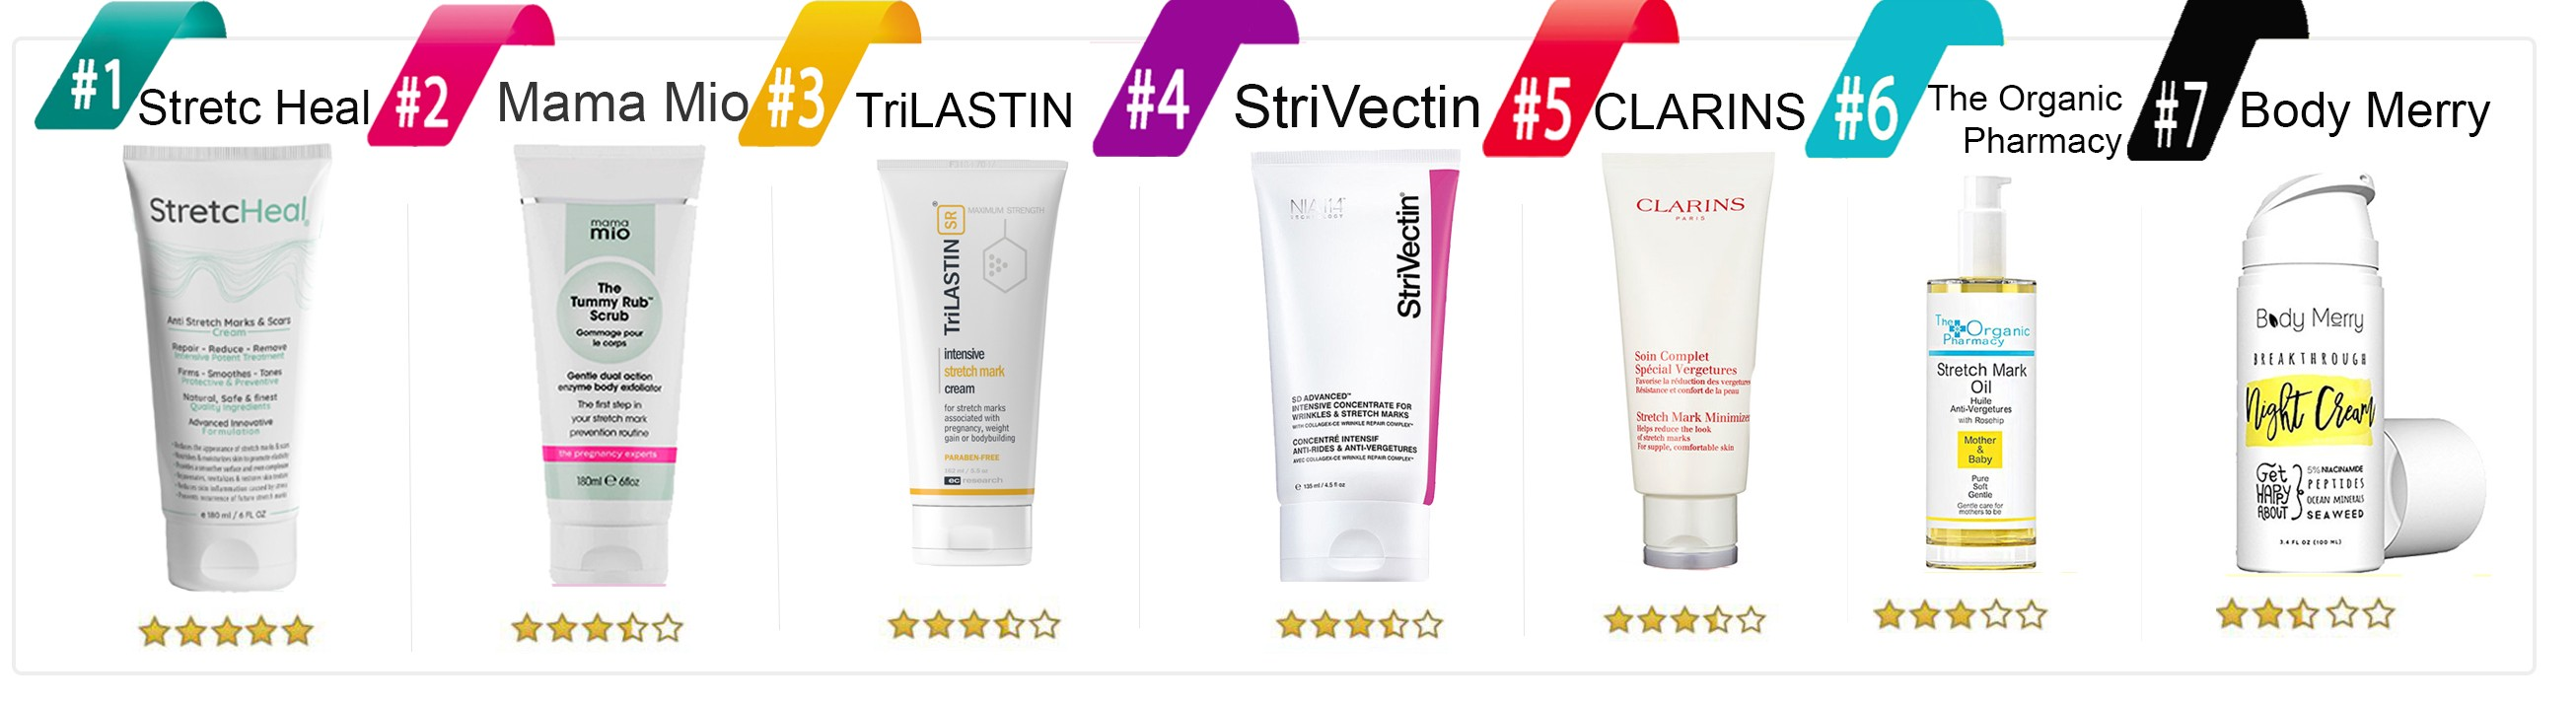 Most Effective Stretch Mark Cream For Pergnancy By Top 7 Stretch